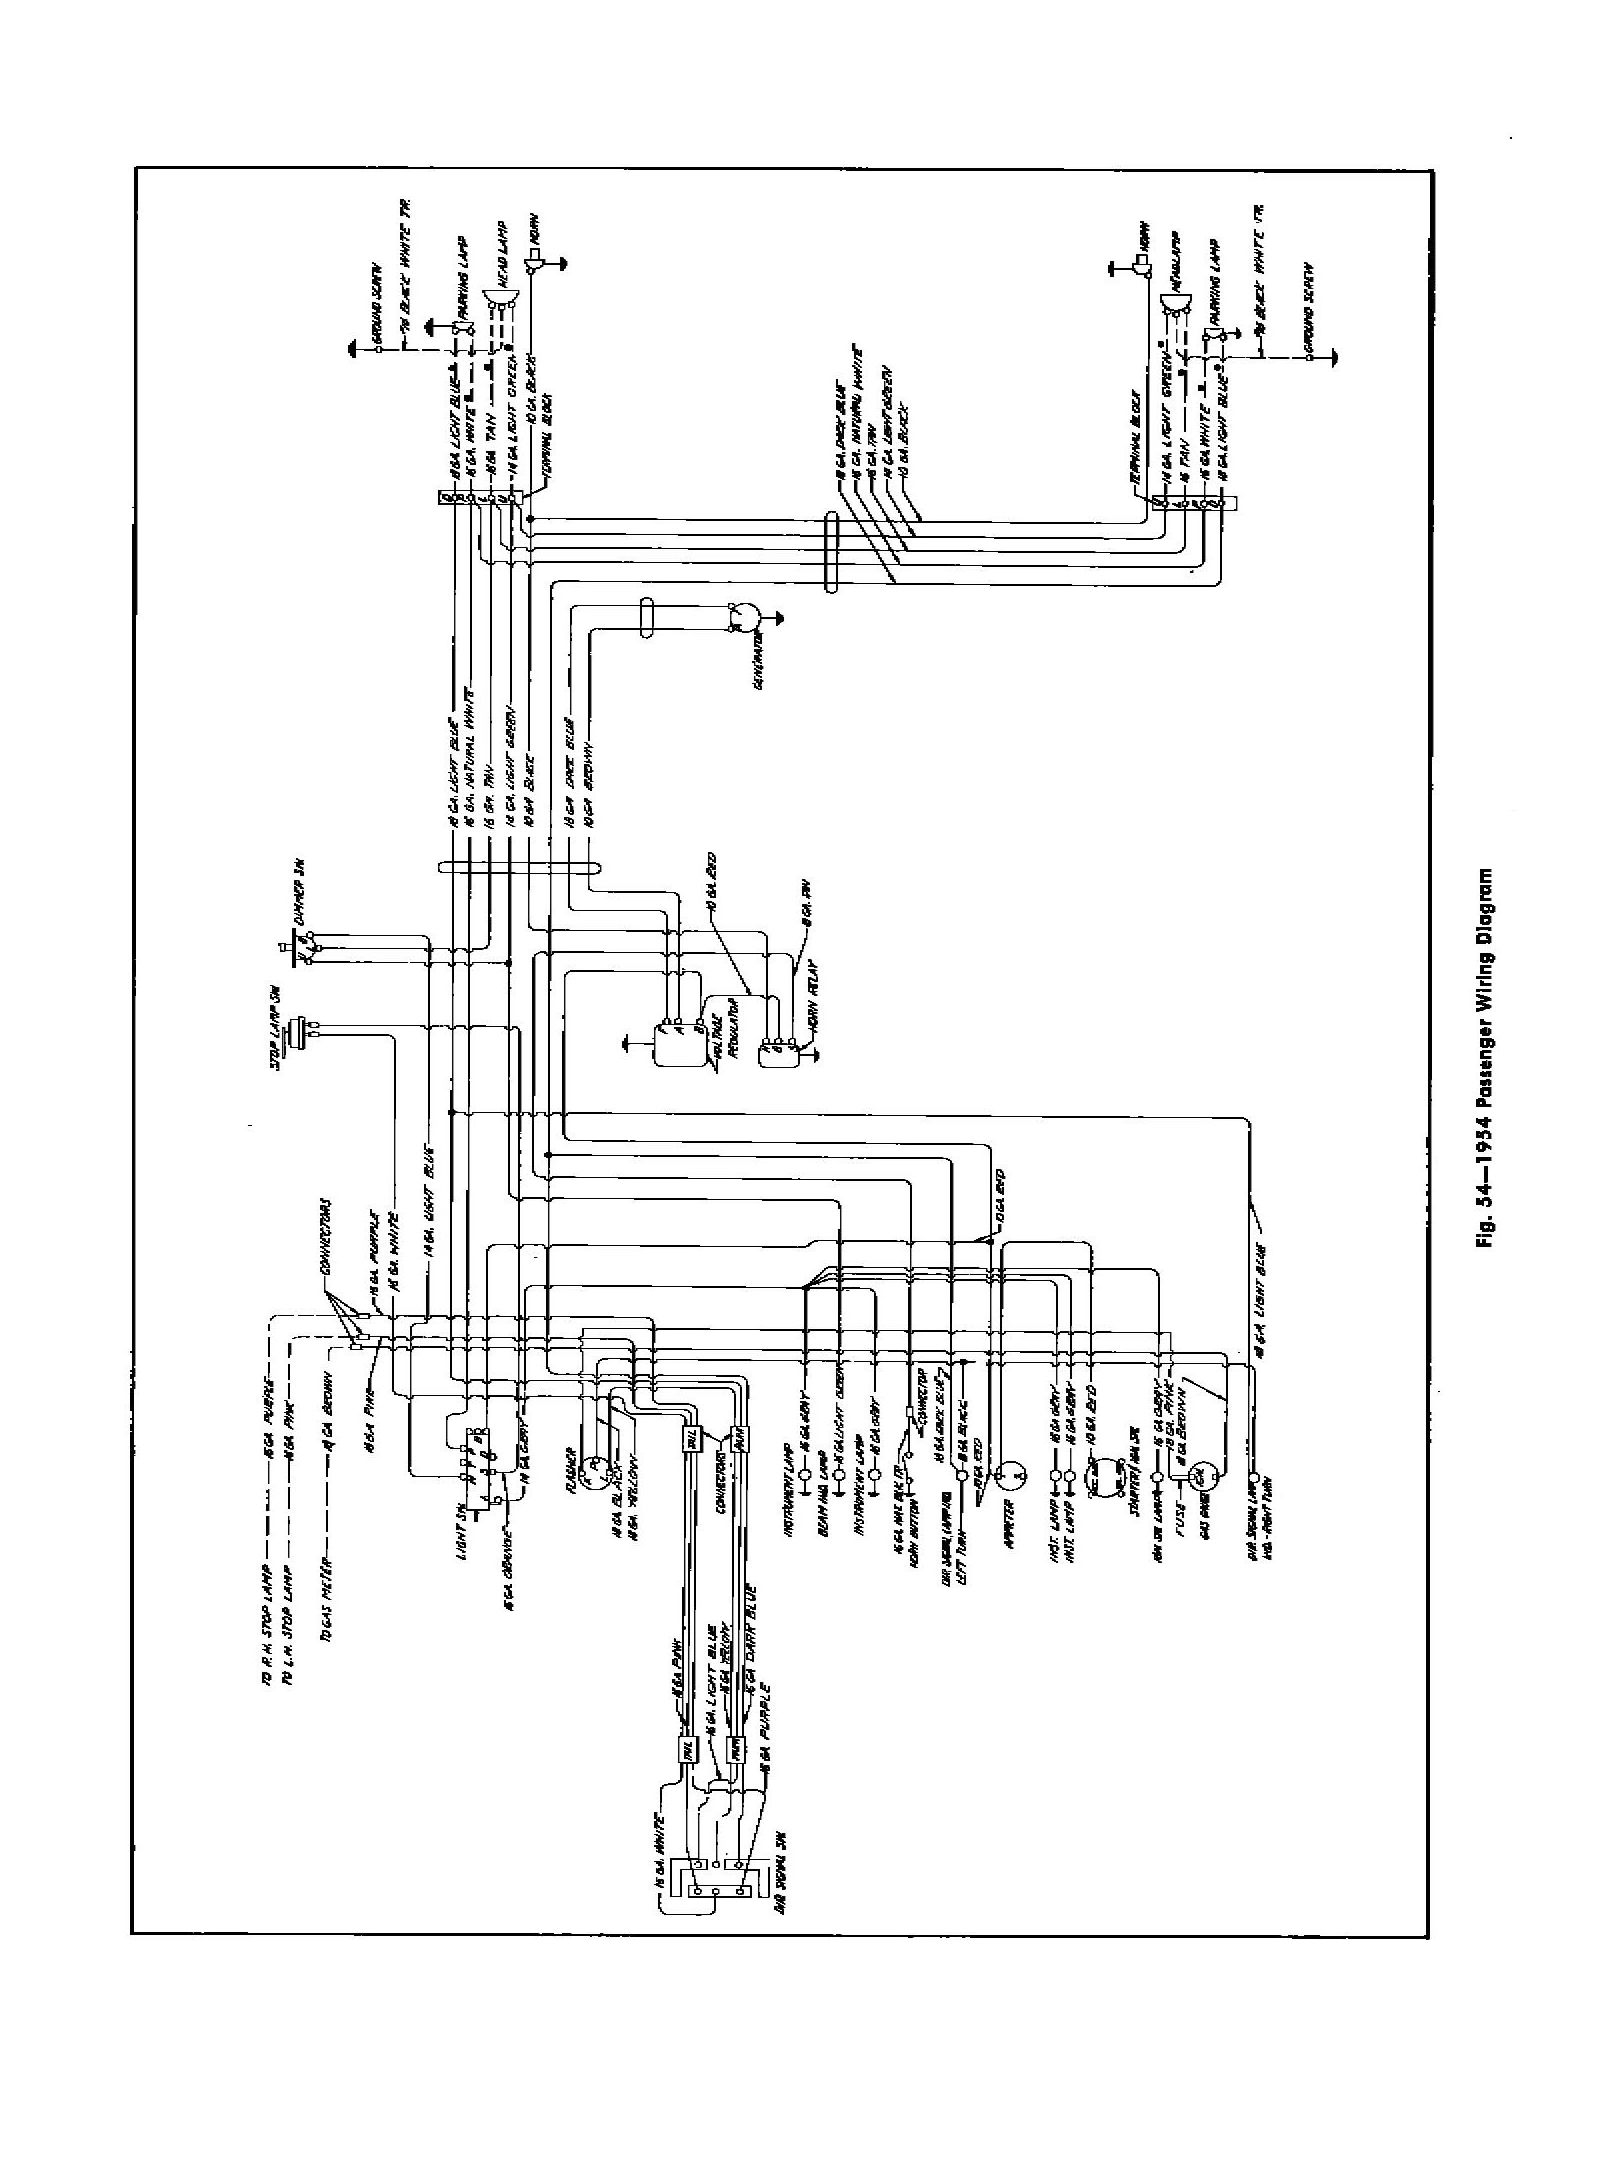 donnelly mirror wiring diagram donnelly discover your wiring 1949 ford truck radio manual gentex rear view mirror wiring diagram